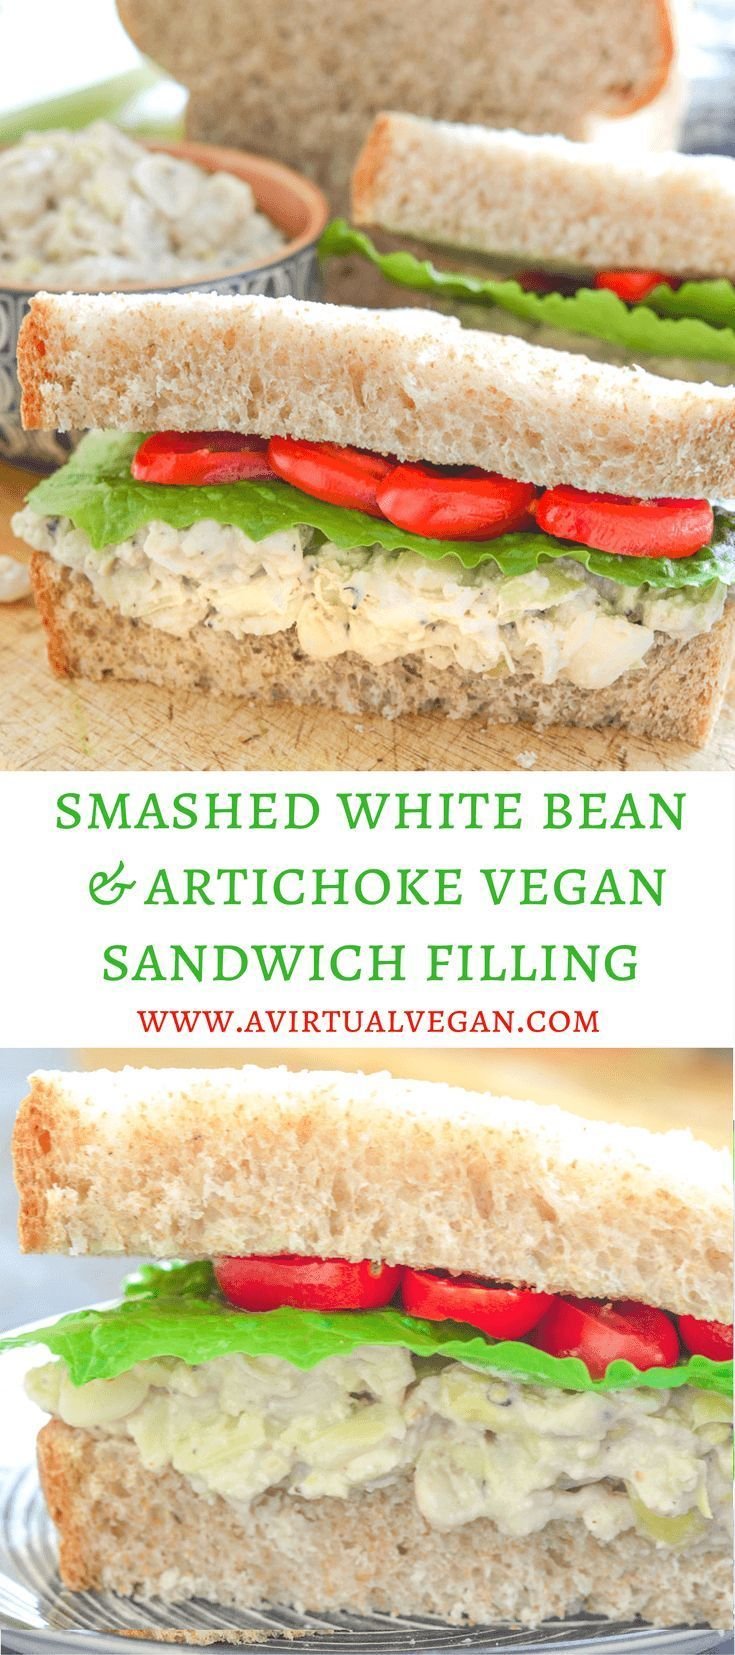 Creamy Smashed White Bean & Artichoke Vegan Sandwich Filling with hints of rosemary & lemon. Fresh, delicious & so easy to make! via @avirtualvegan